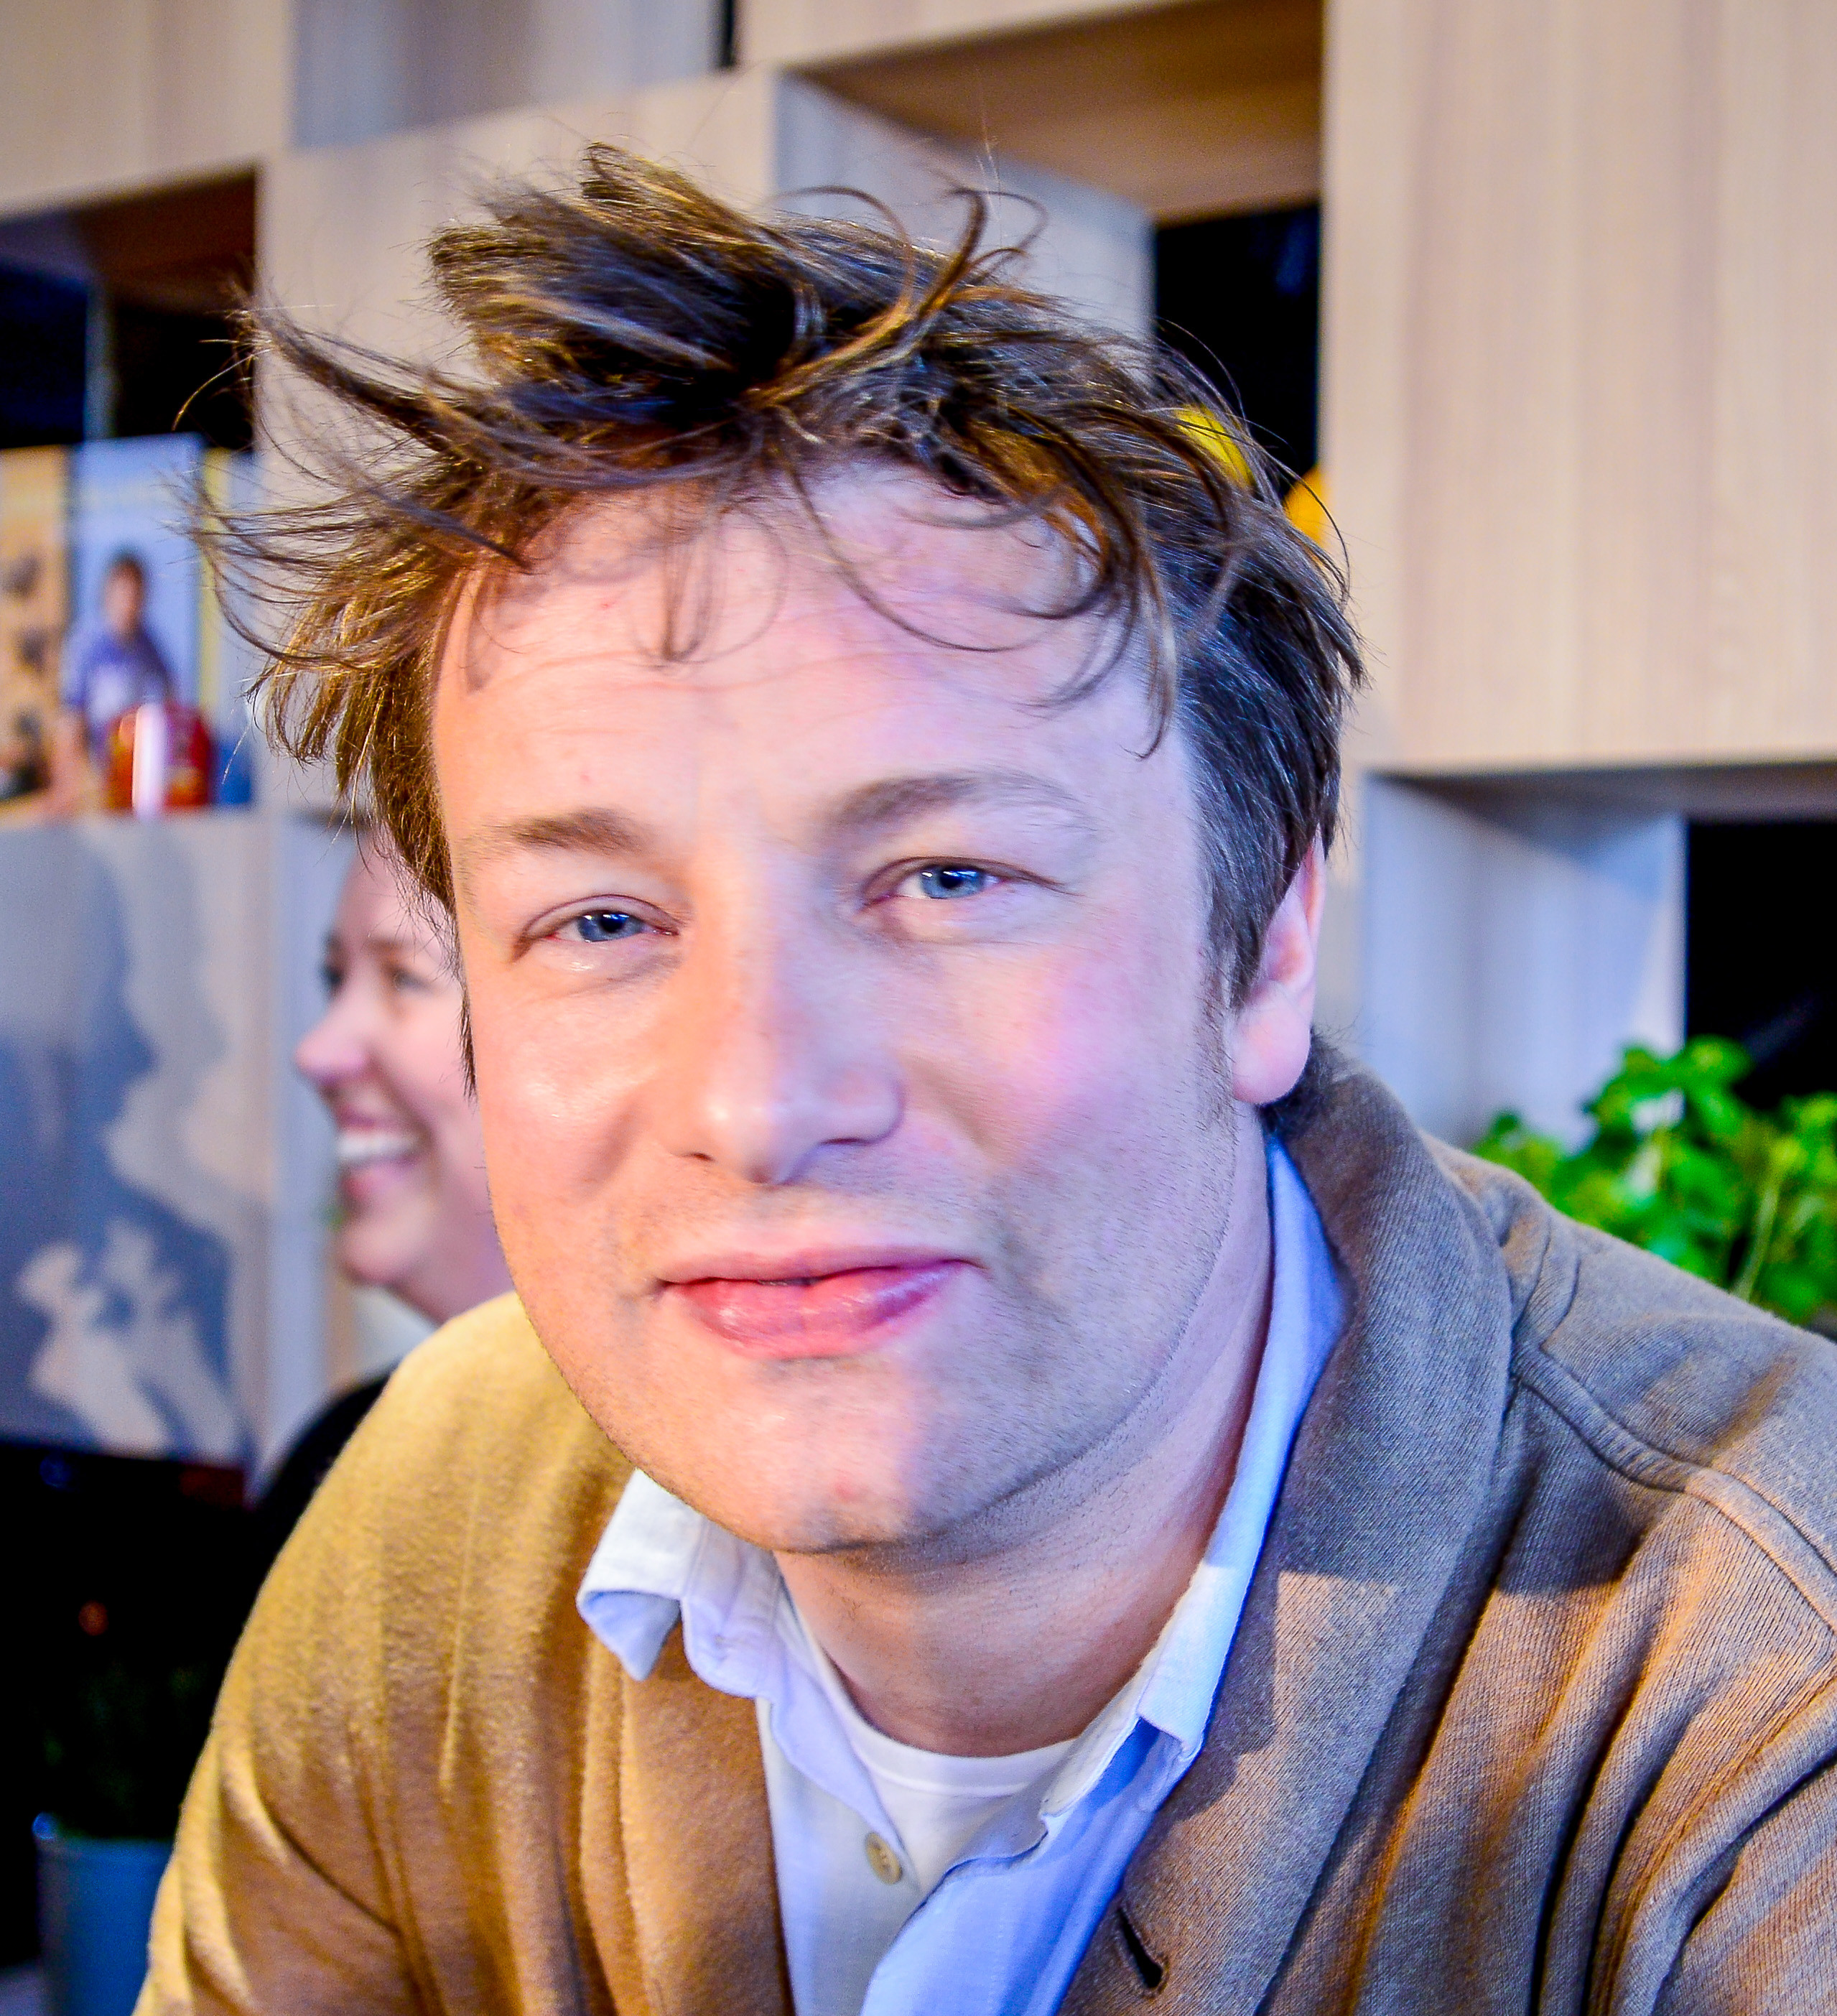 The 43-year old son of father Trevor Oliver and mother Sally Oliver Jamie Oliver in 2018 photo. Jamie Oliver earned a 18 million dollar salary - leaving the net worth at 400 million in 2018